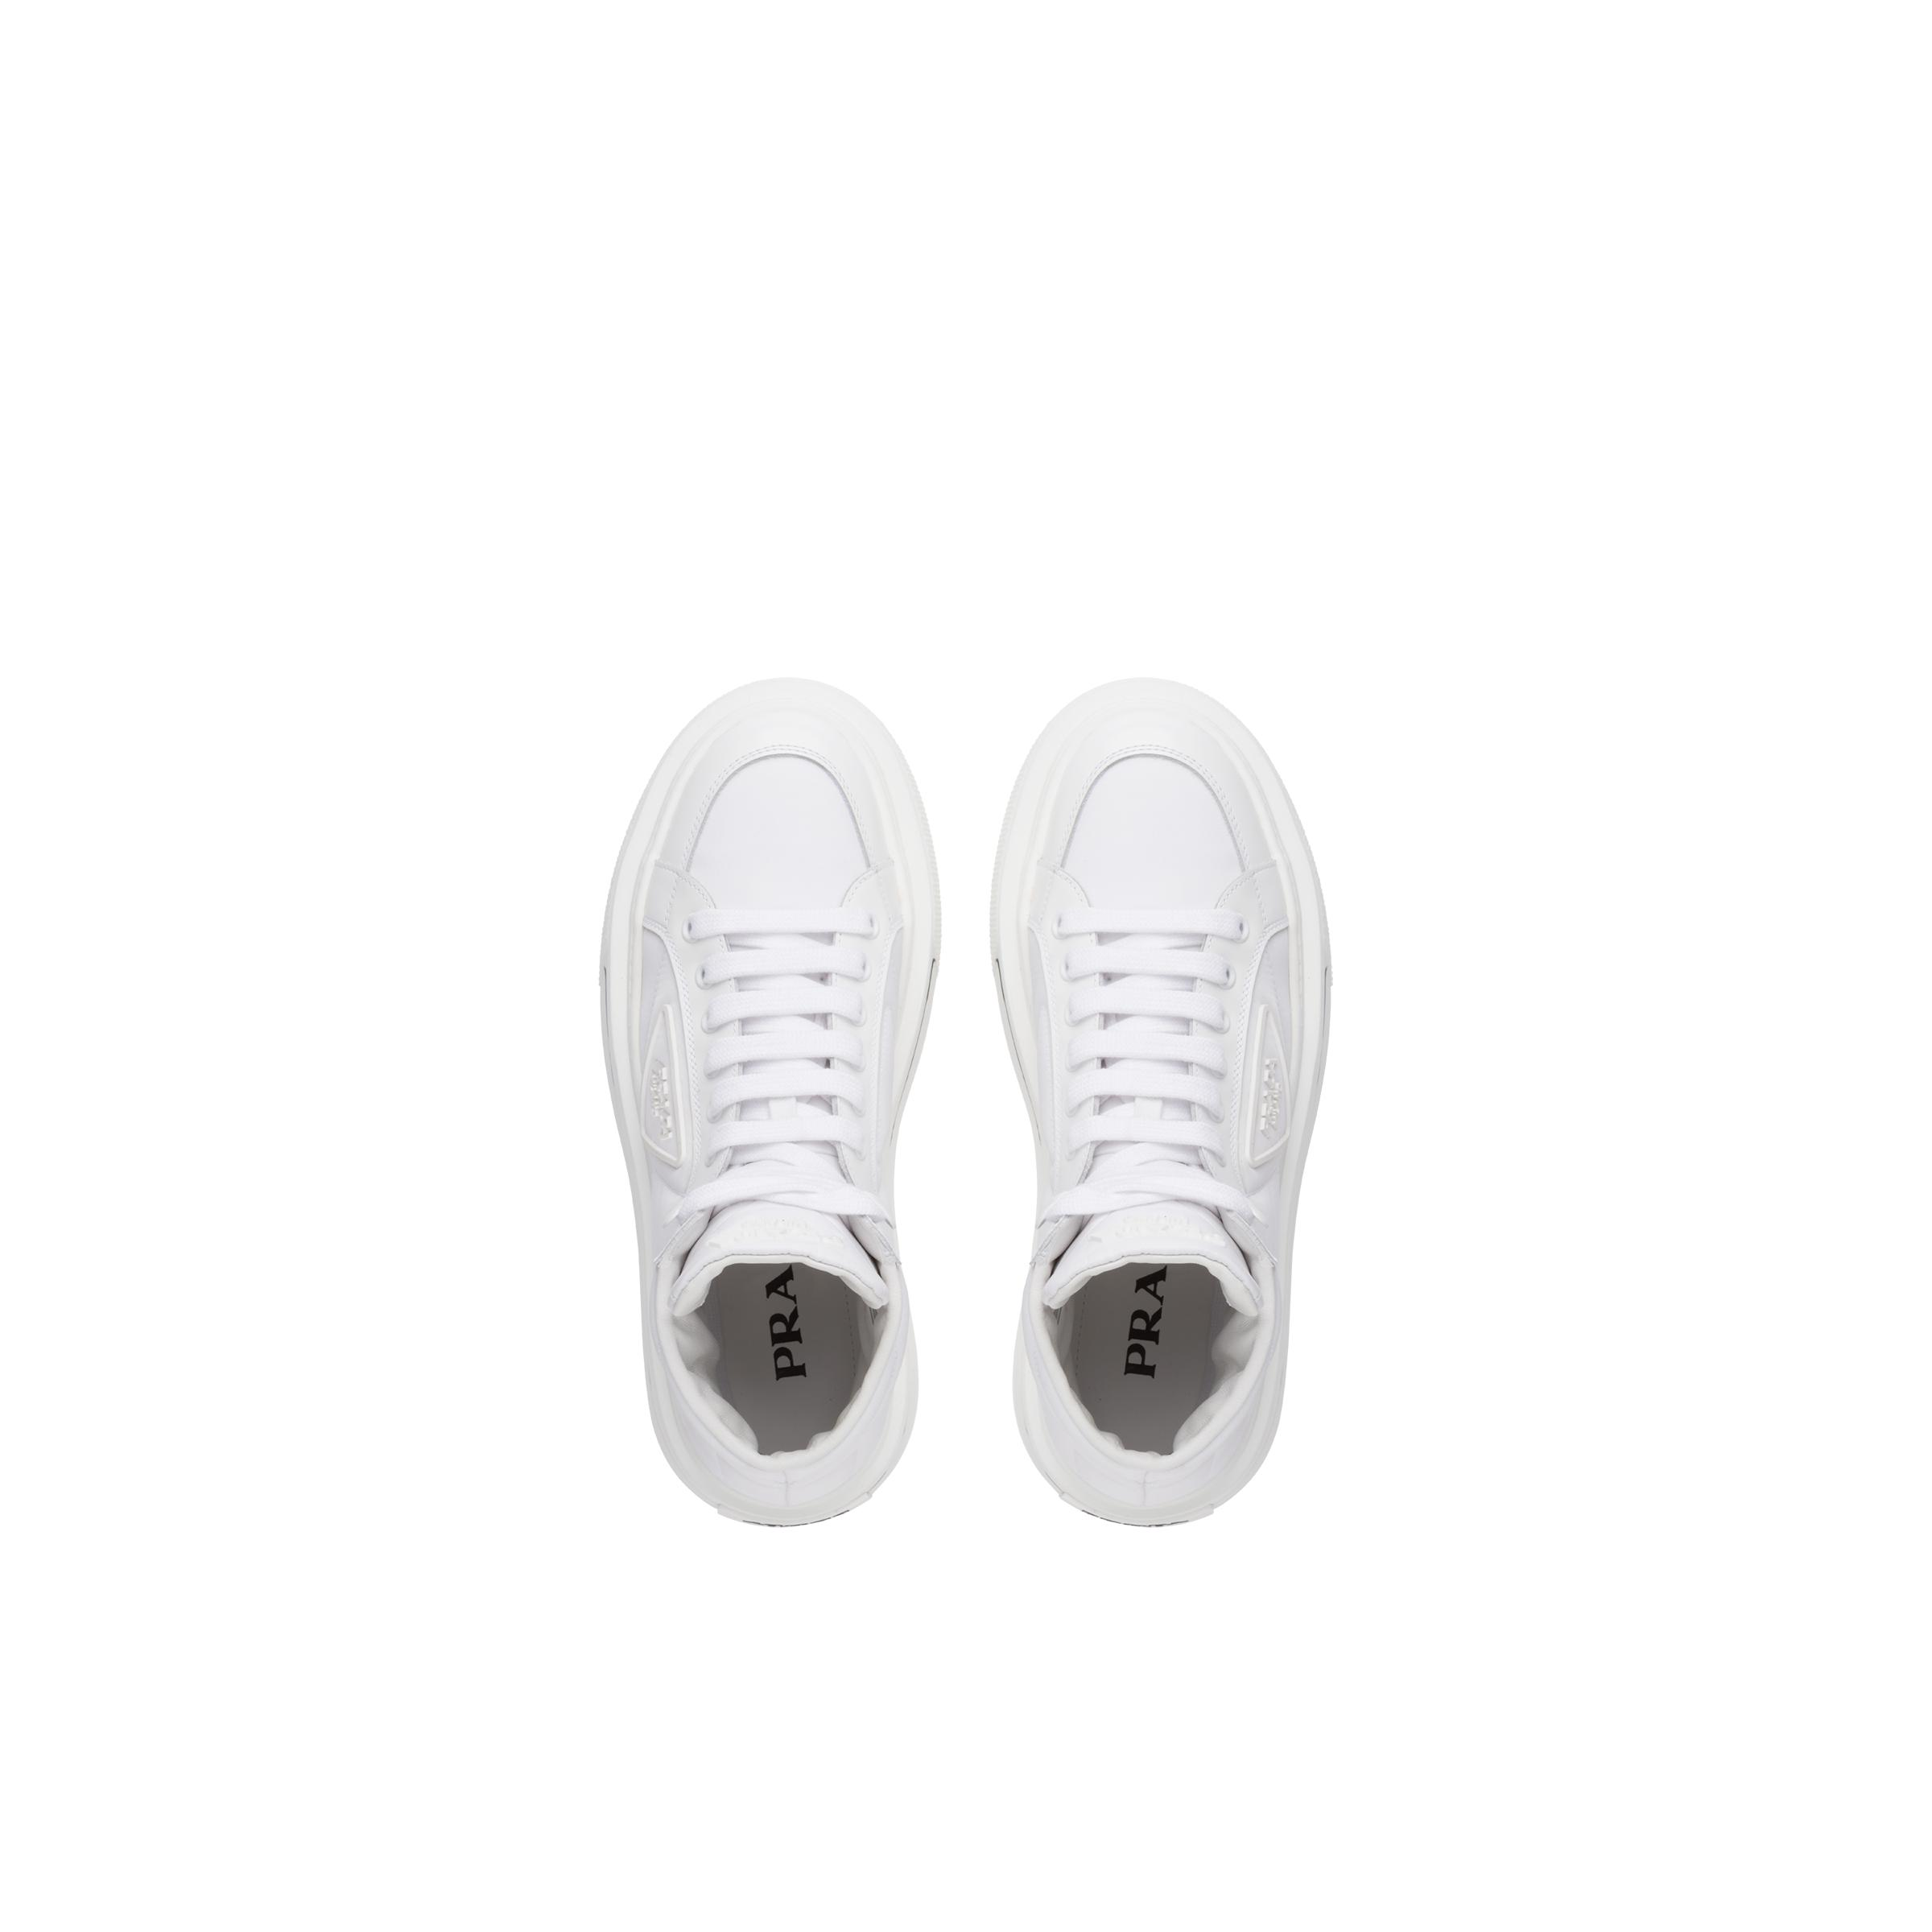 Macro Re-nylon And Brushed Leather High-top Sneakers Women White 1